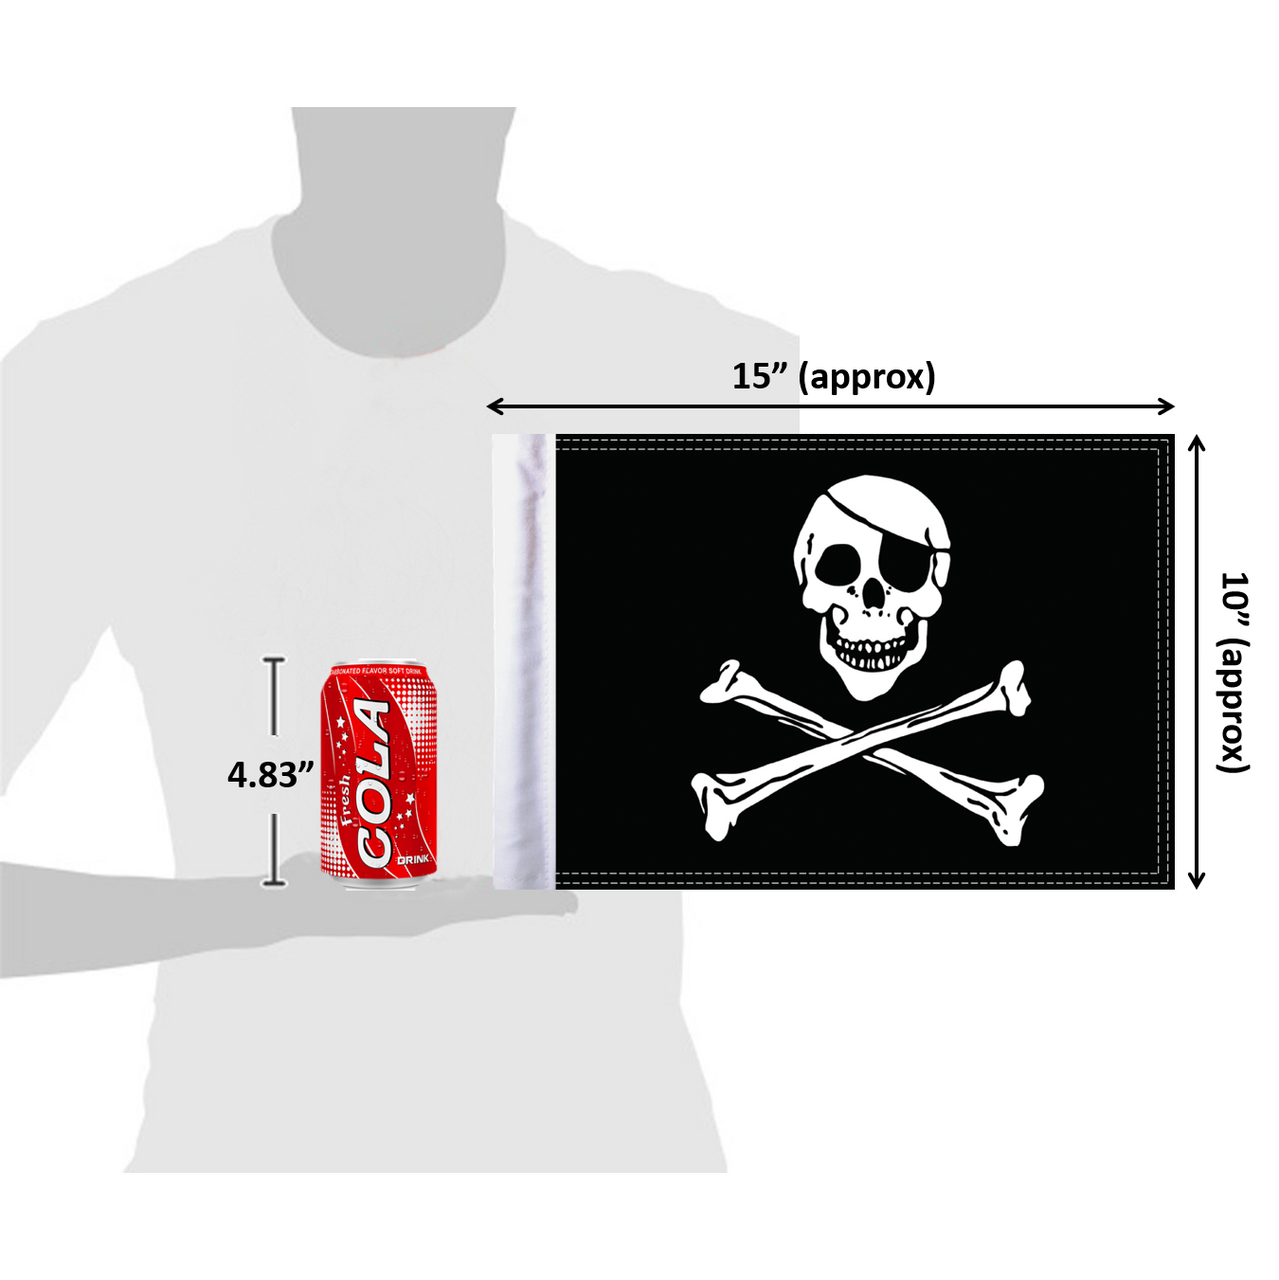 """10""""x15"""" Jolly Roger flag (size comparison view)"""